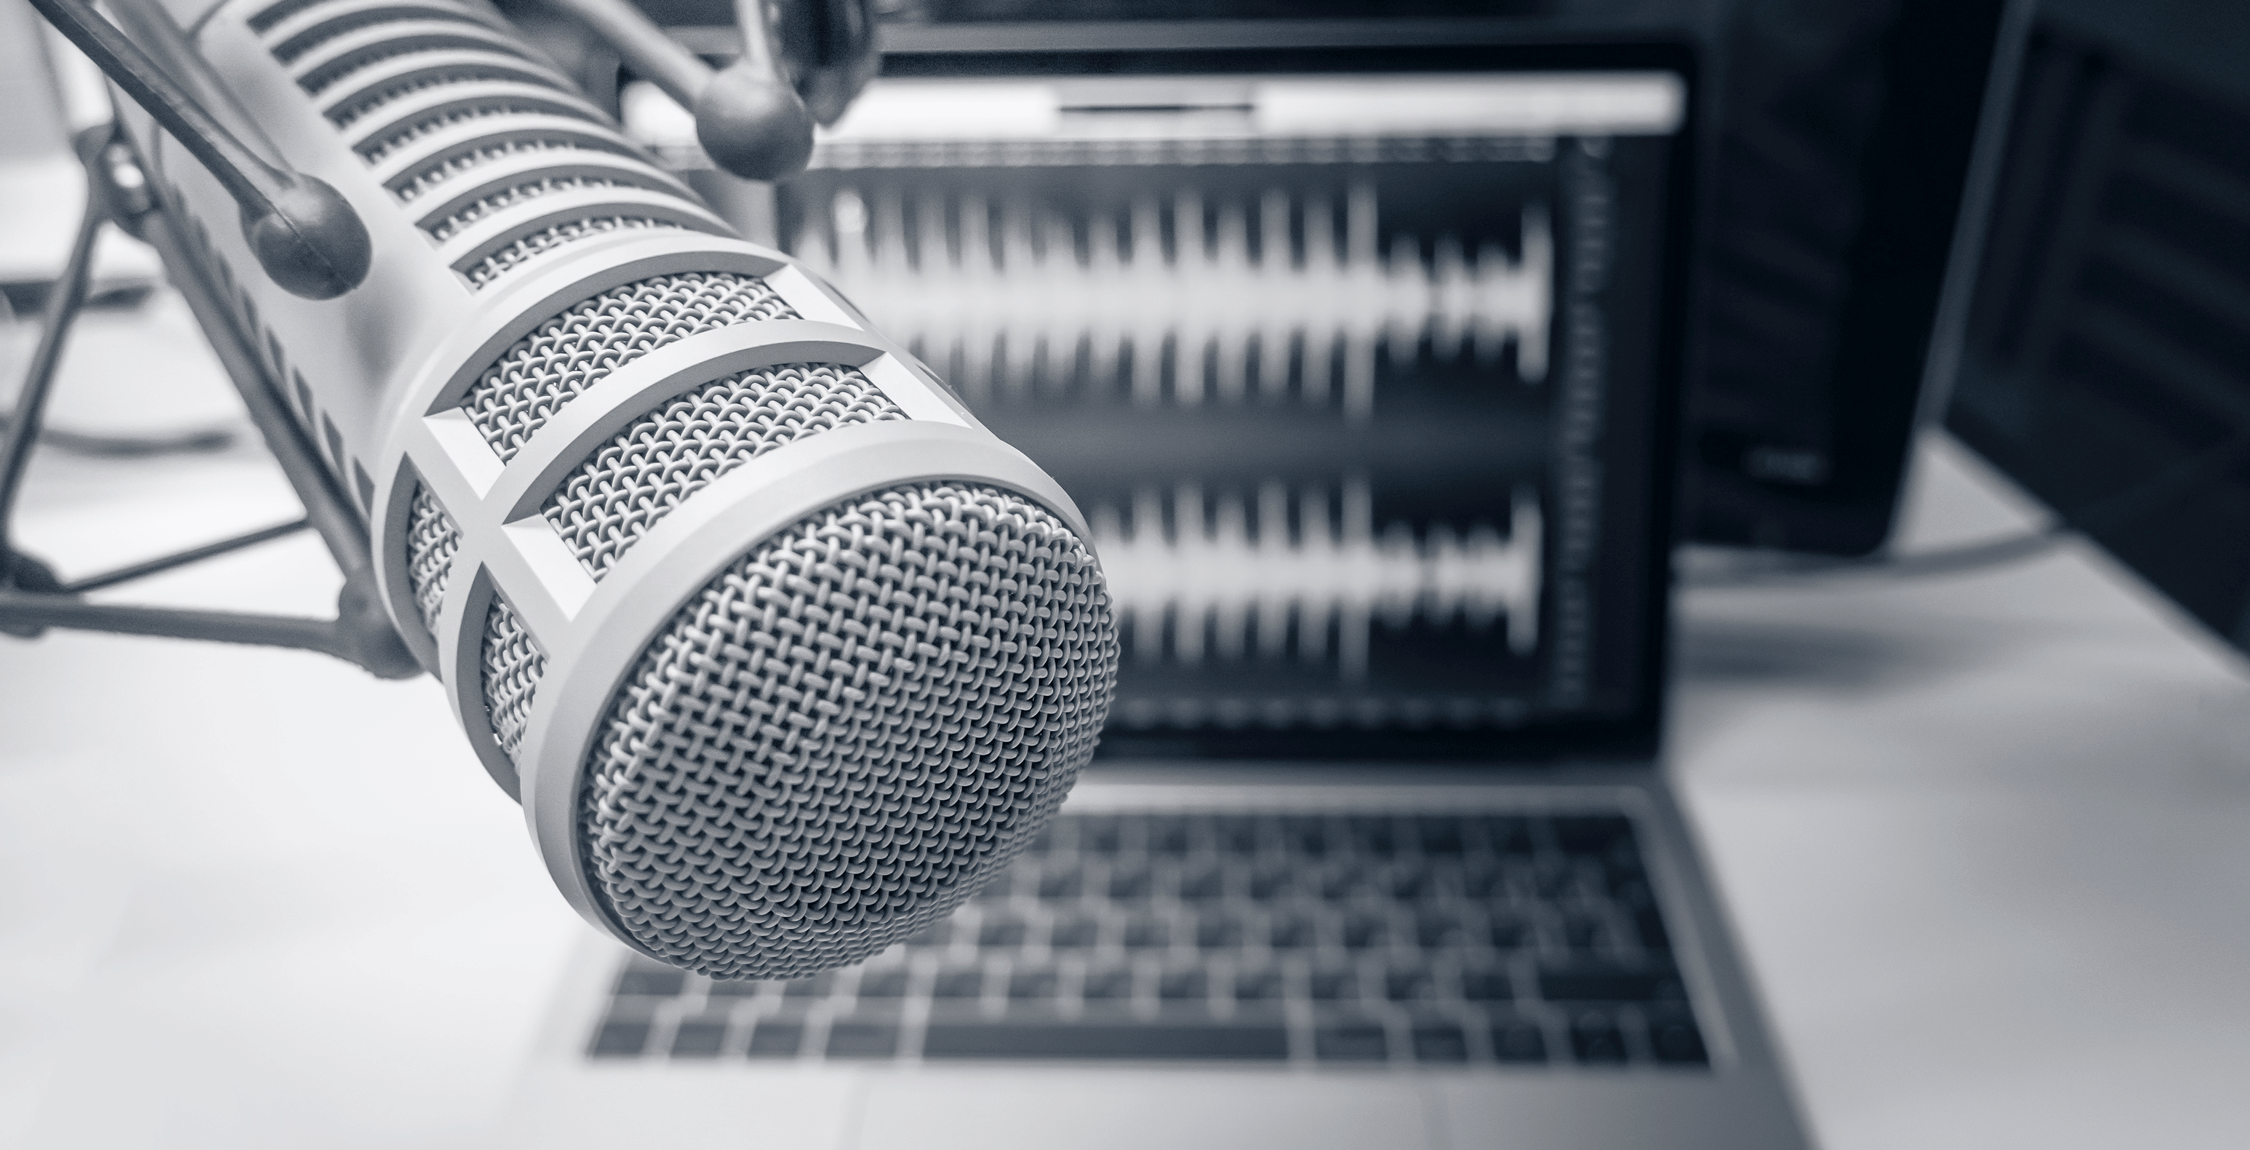 black and white photo of a recording studio microphone in front of a laptop displaying soundwaves